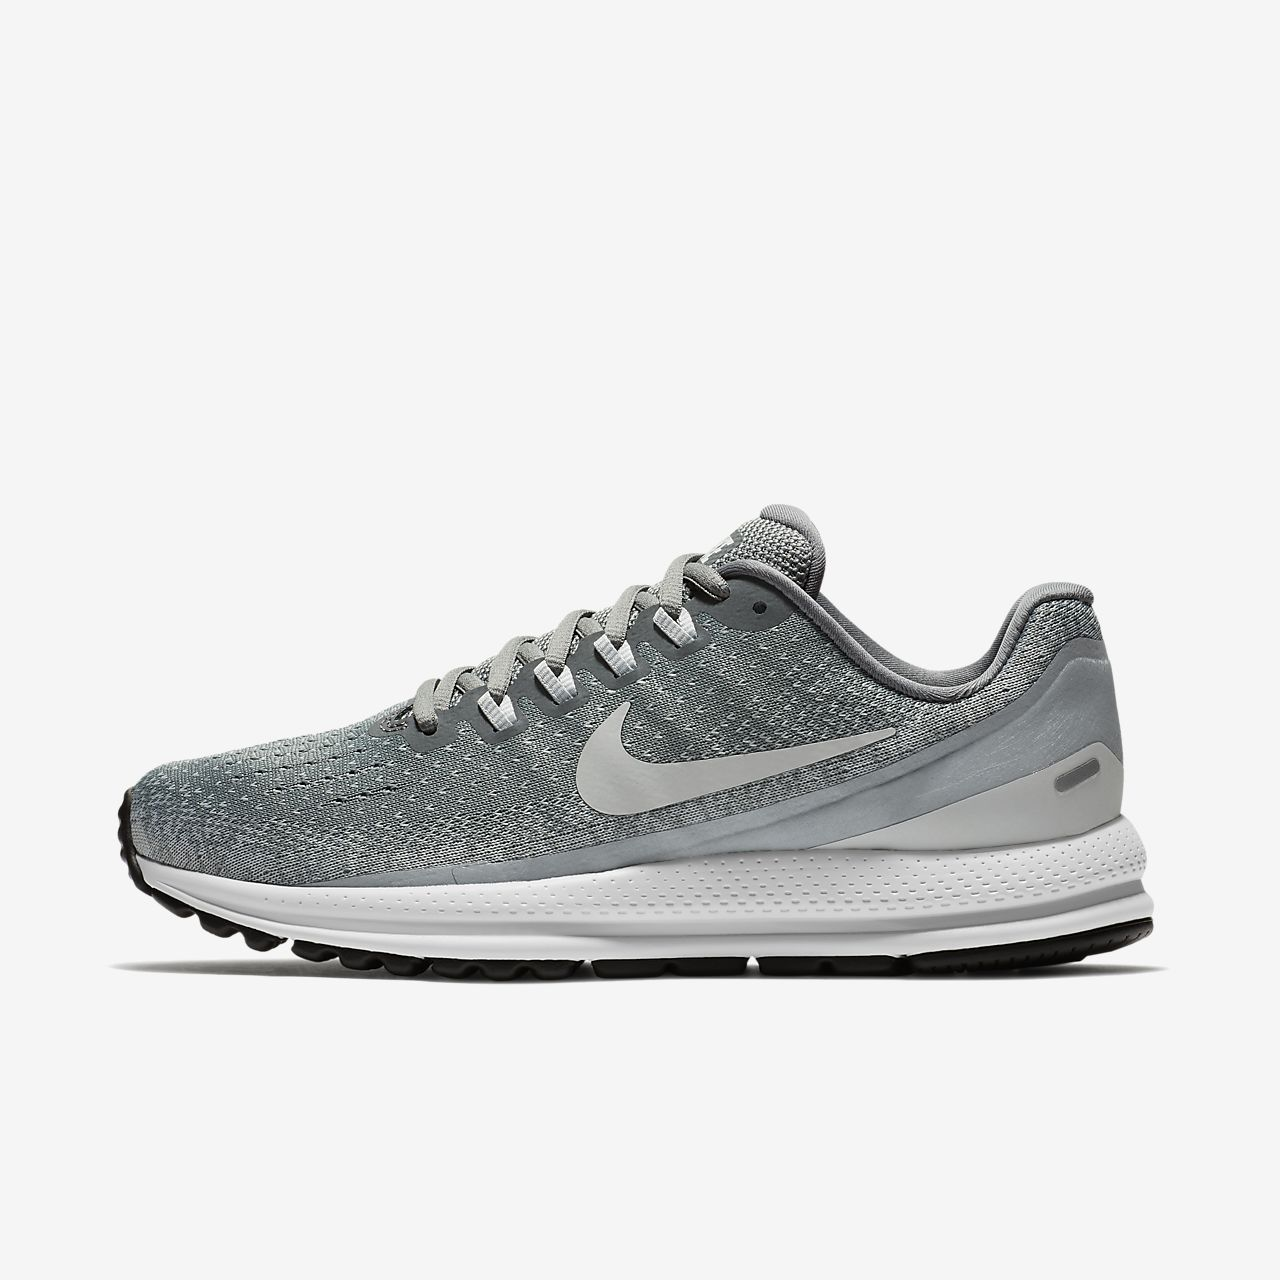 brand new 1cdd2 a7182 ... Chaussure de running Nike Air Zoom Vomero 13 pour Femme